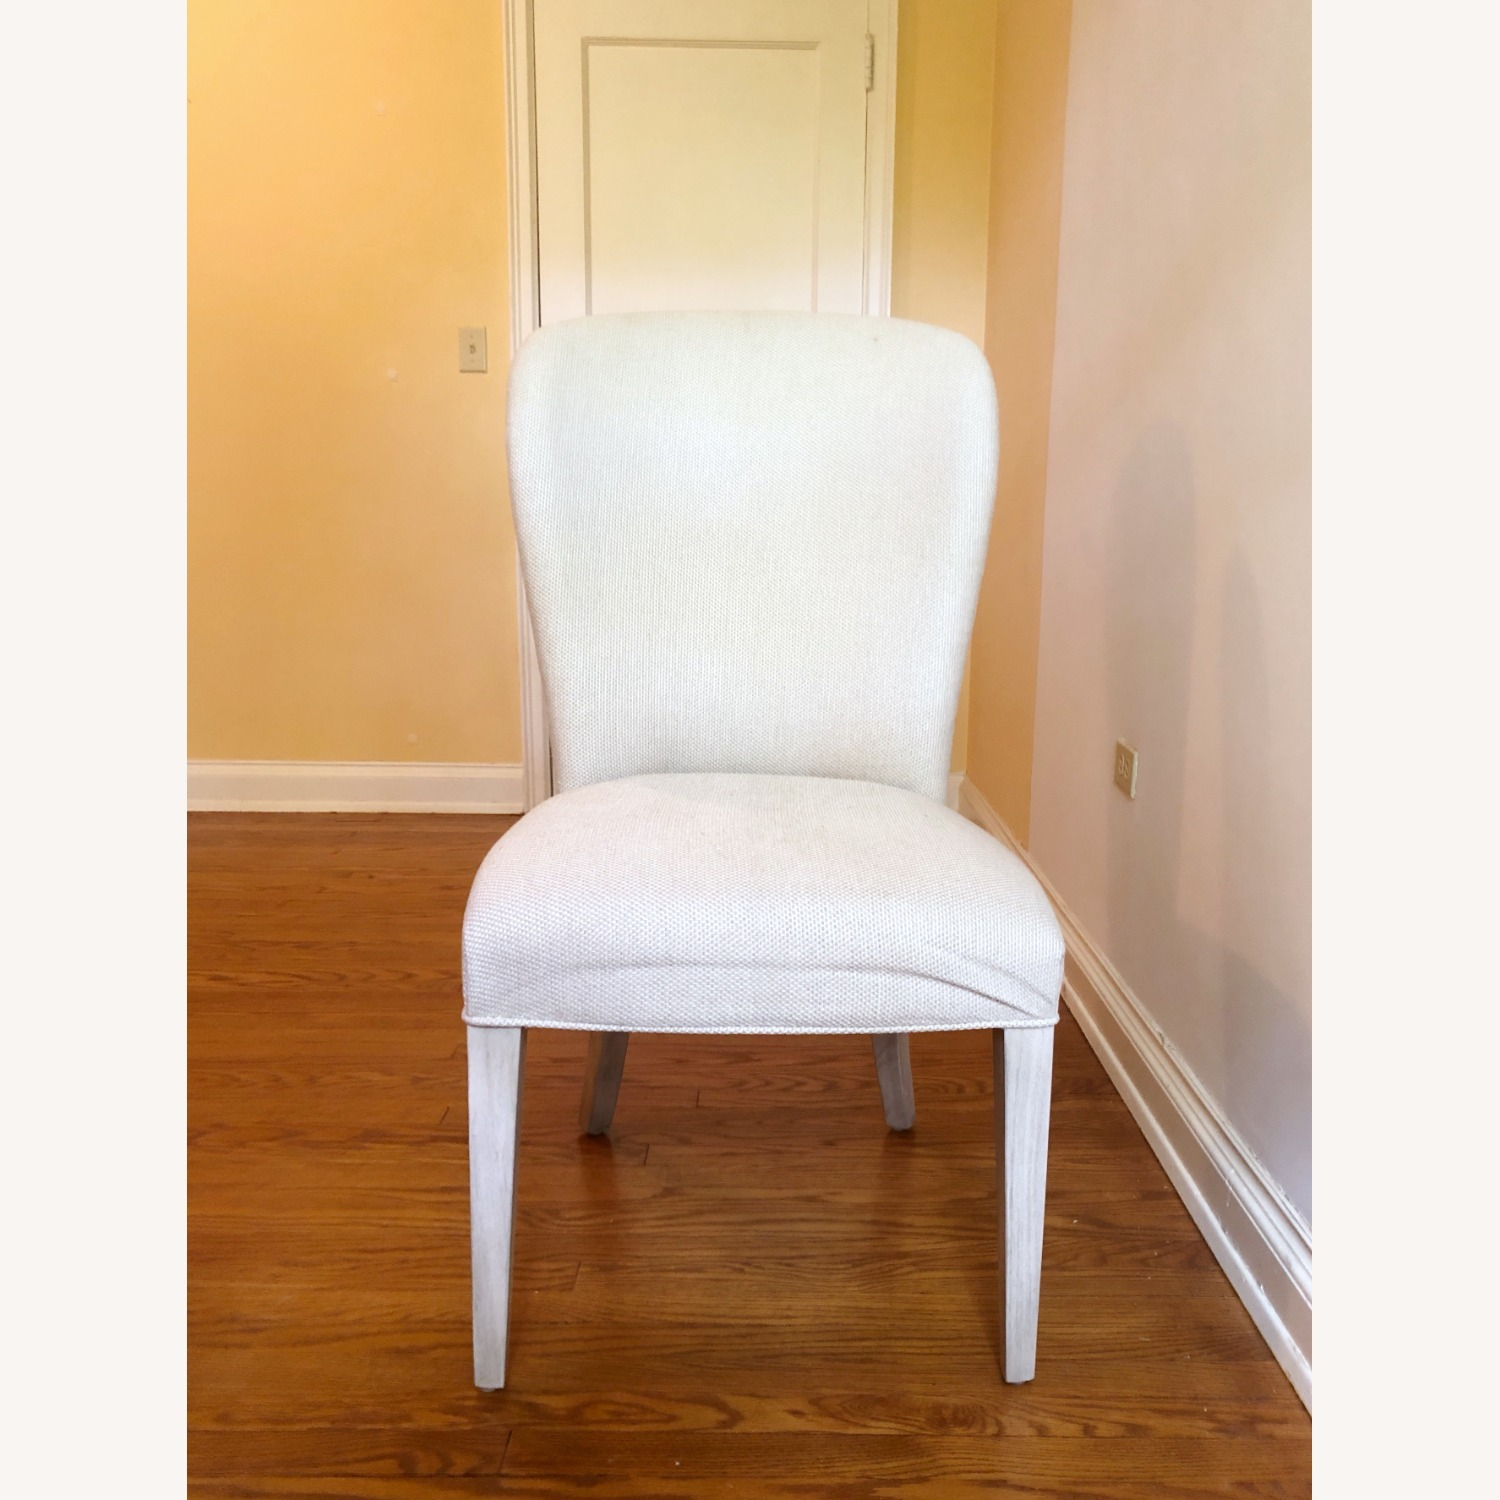 Oyster Bay Baxter Upholstered Side Chair - image-1